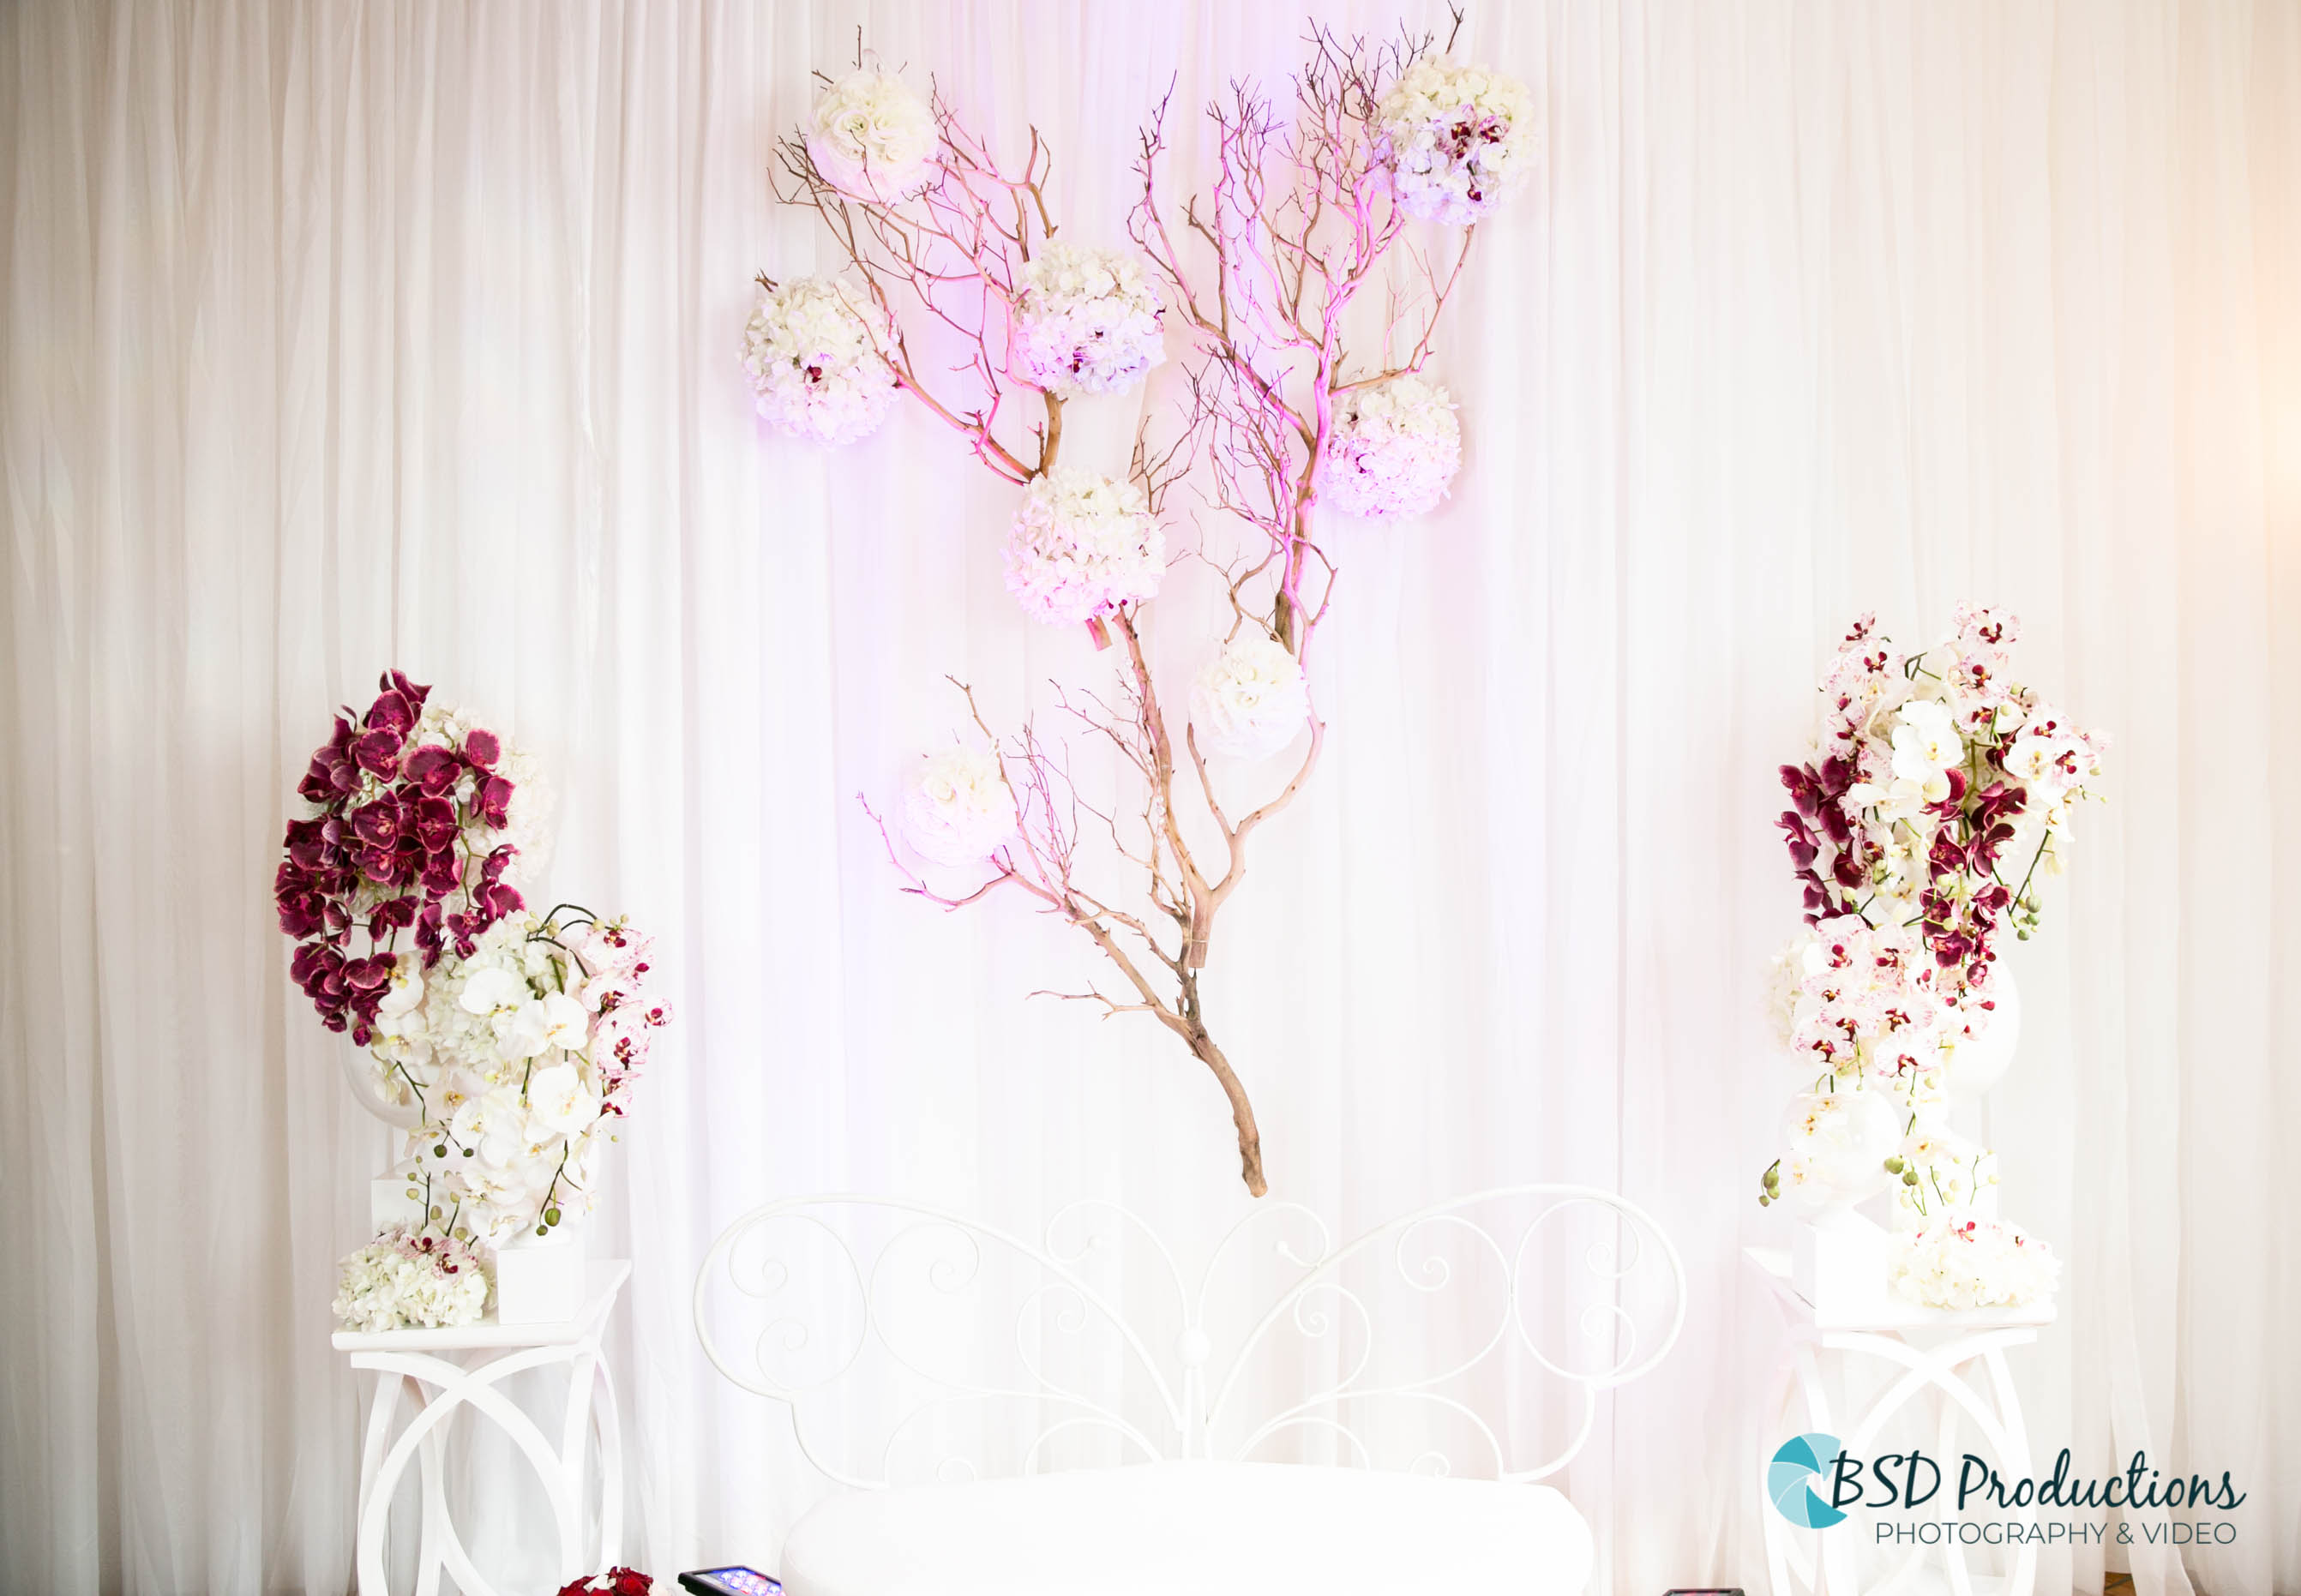 UH5A2422 Wedding – BSD Productions Photography